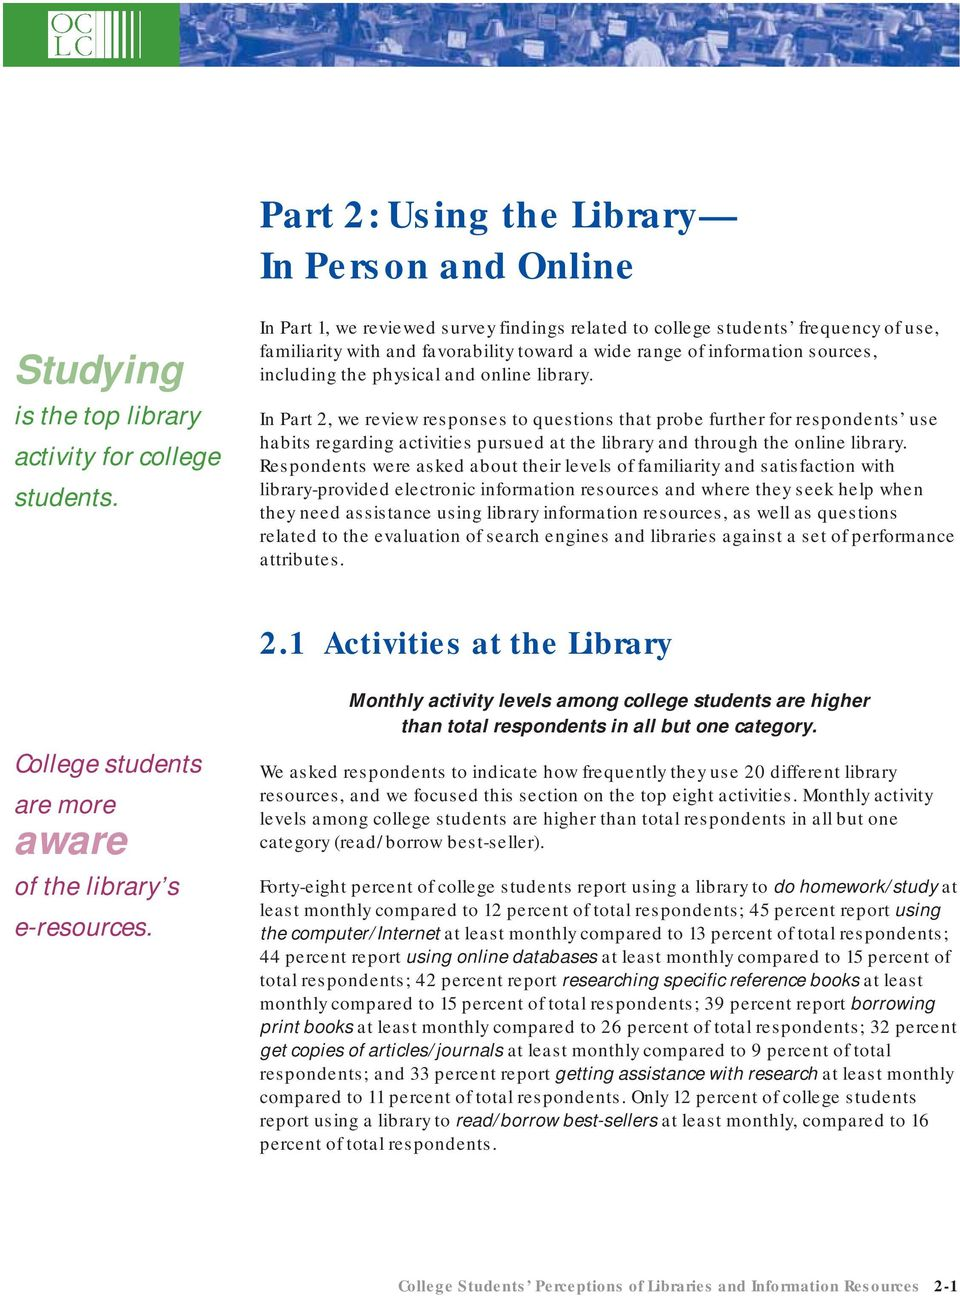 library. In Part 2, we review responses to questions that probe further for respondents use habits regarding activities pursued at the library and through the online library.